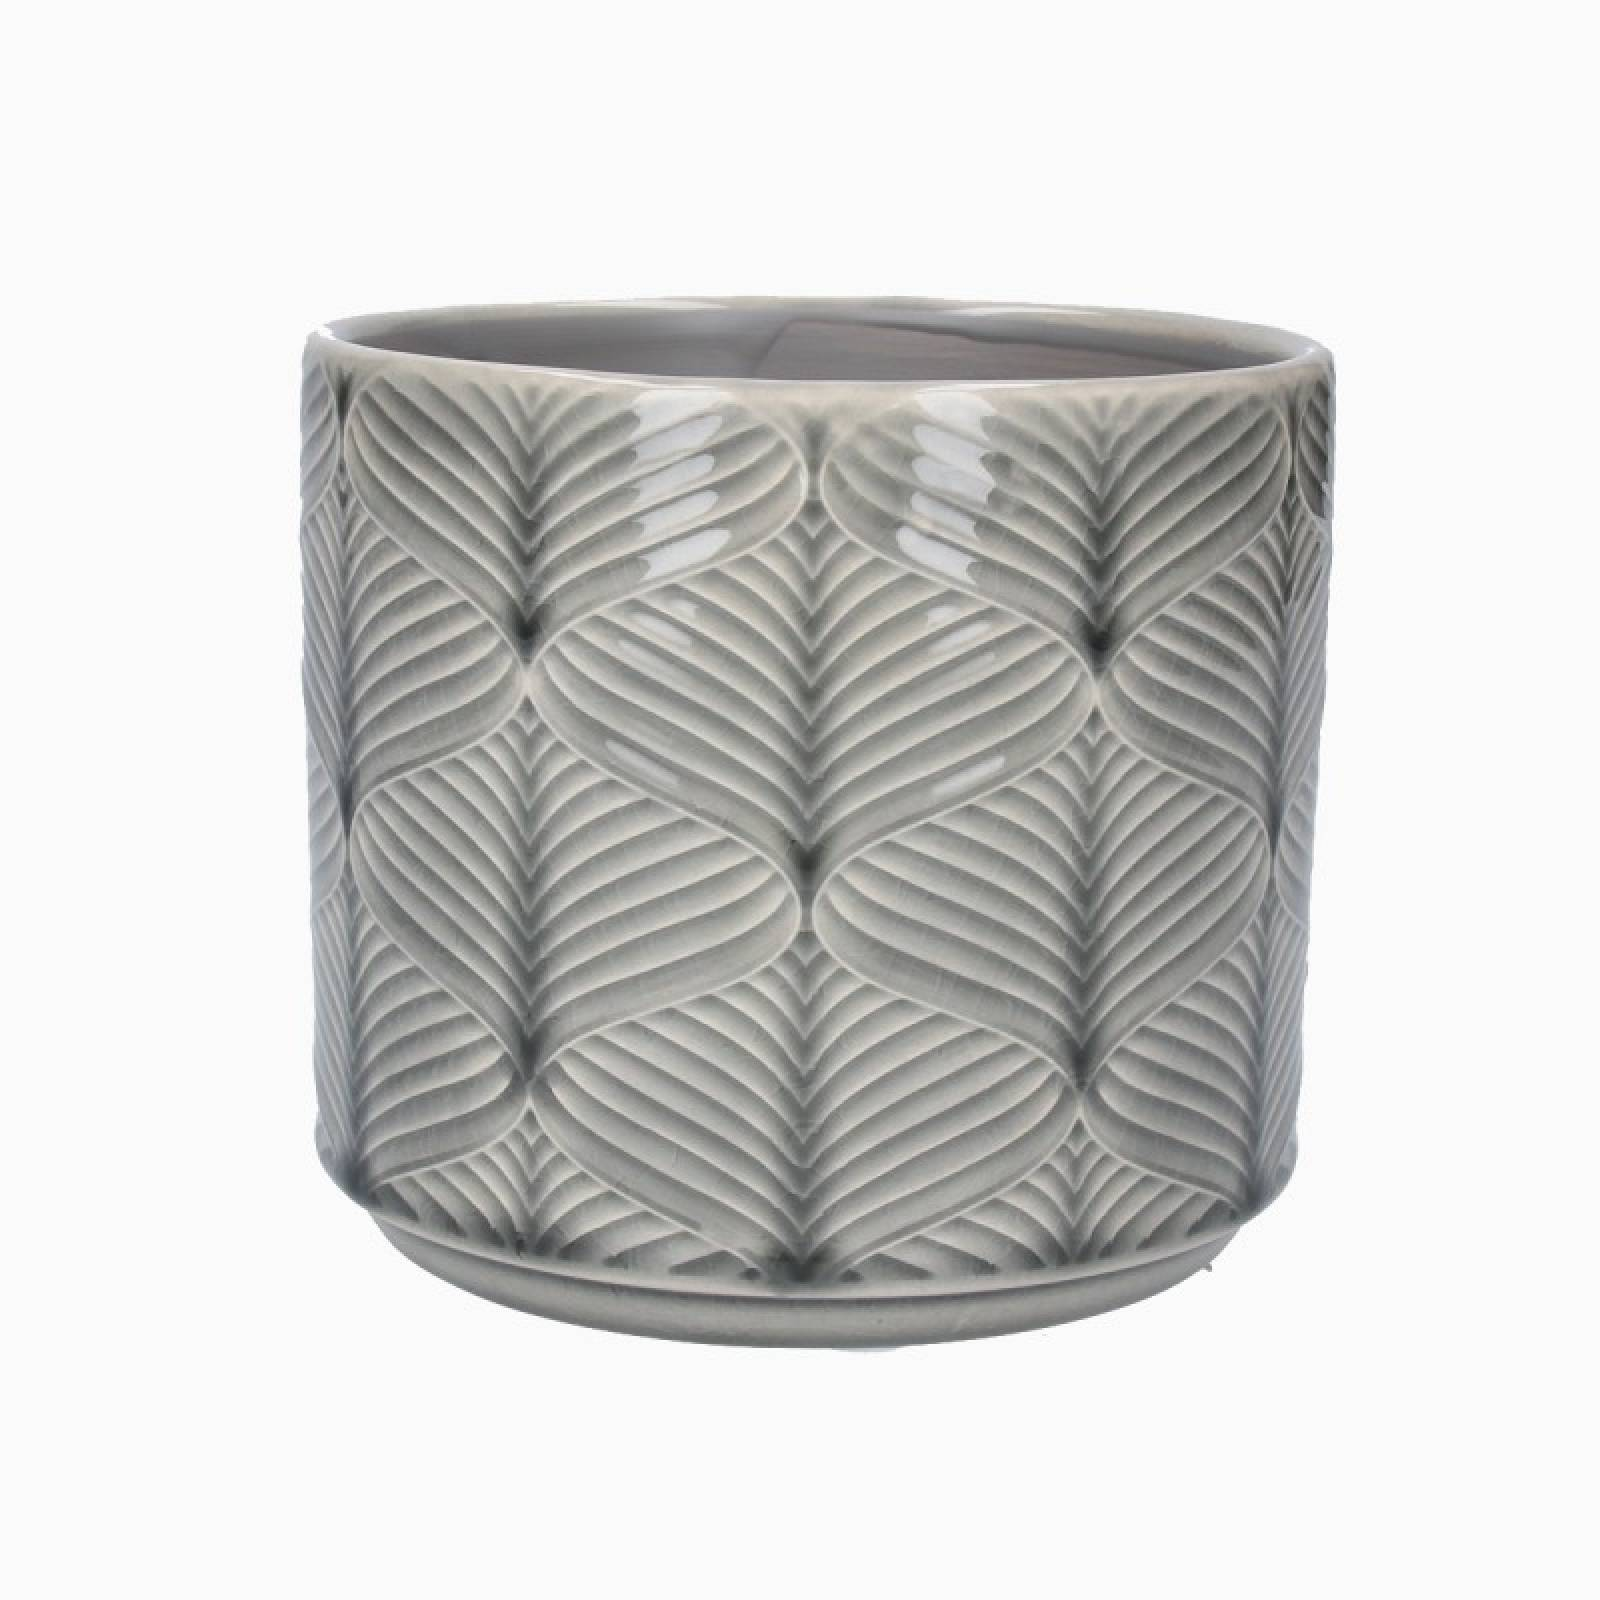 Small Wavy Ceramic Flower Pot Cover In Grey thumbnails